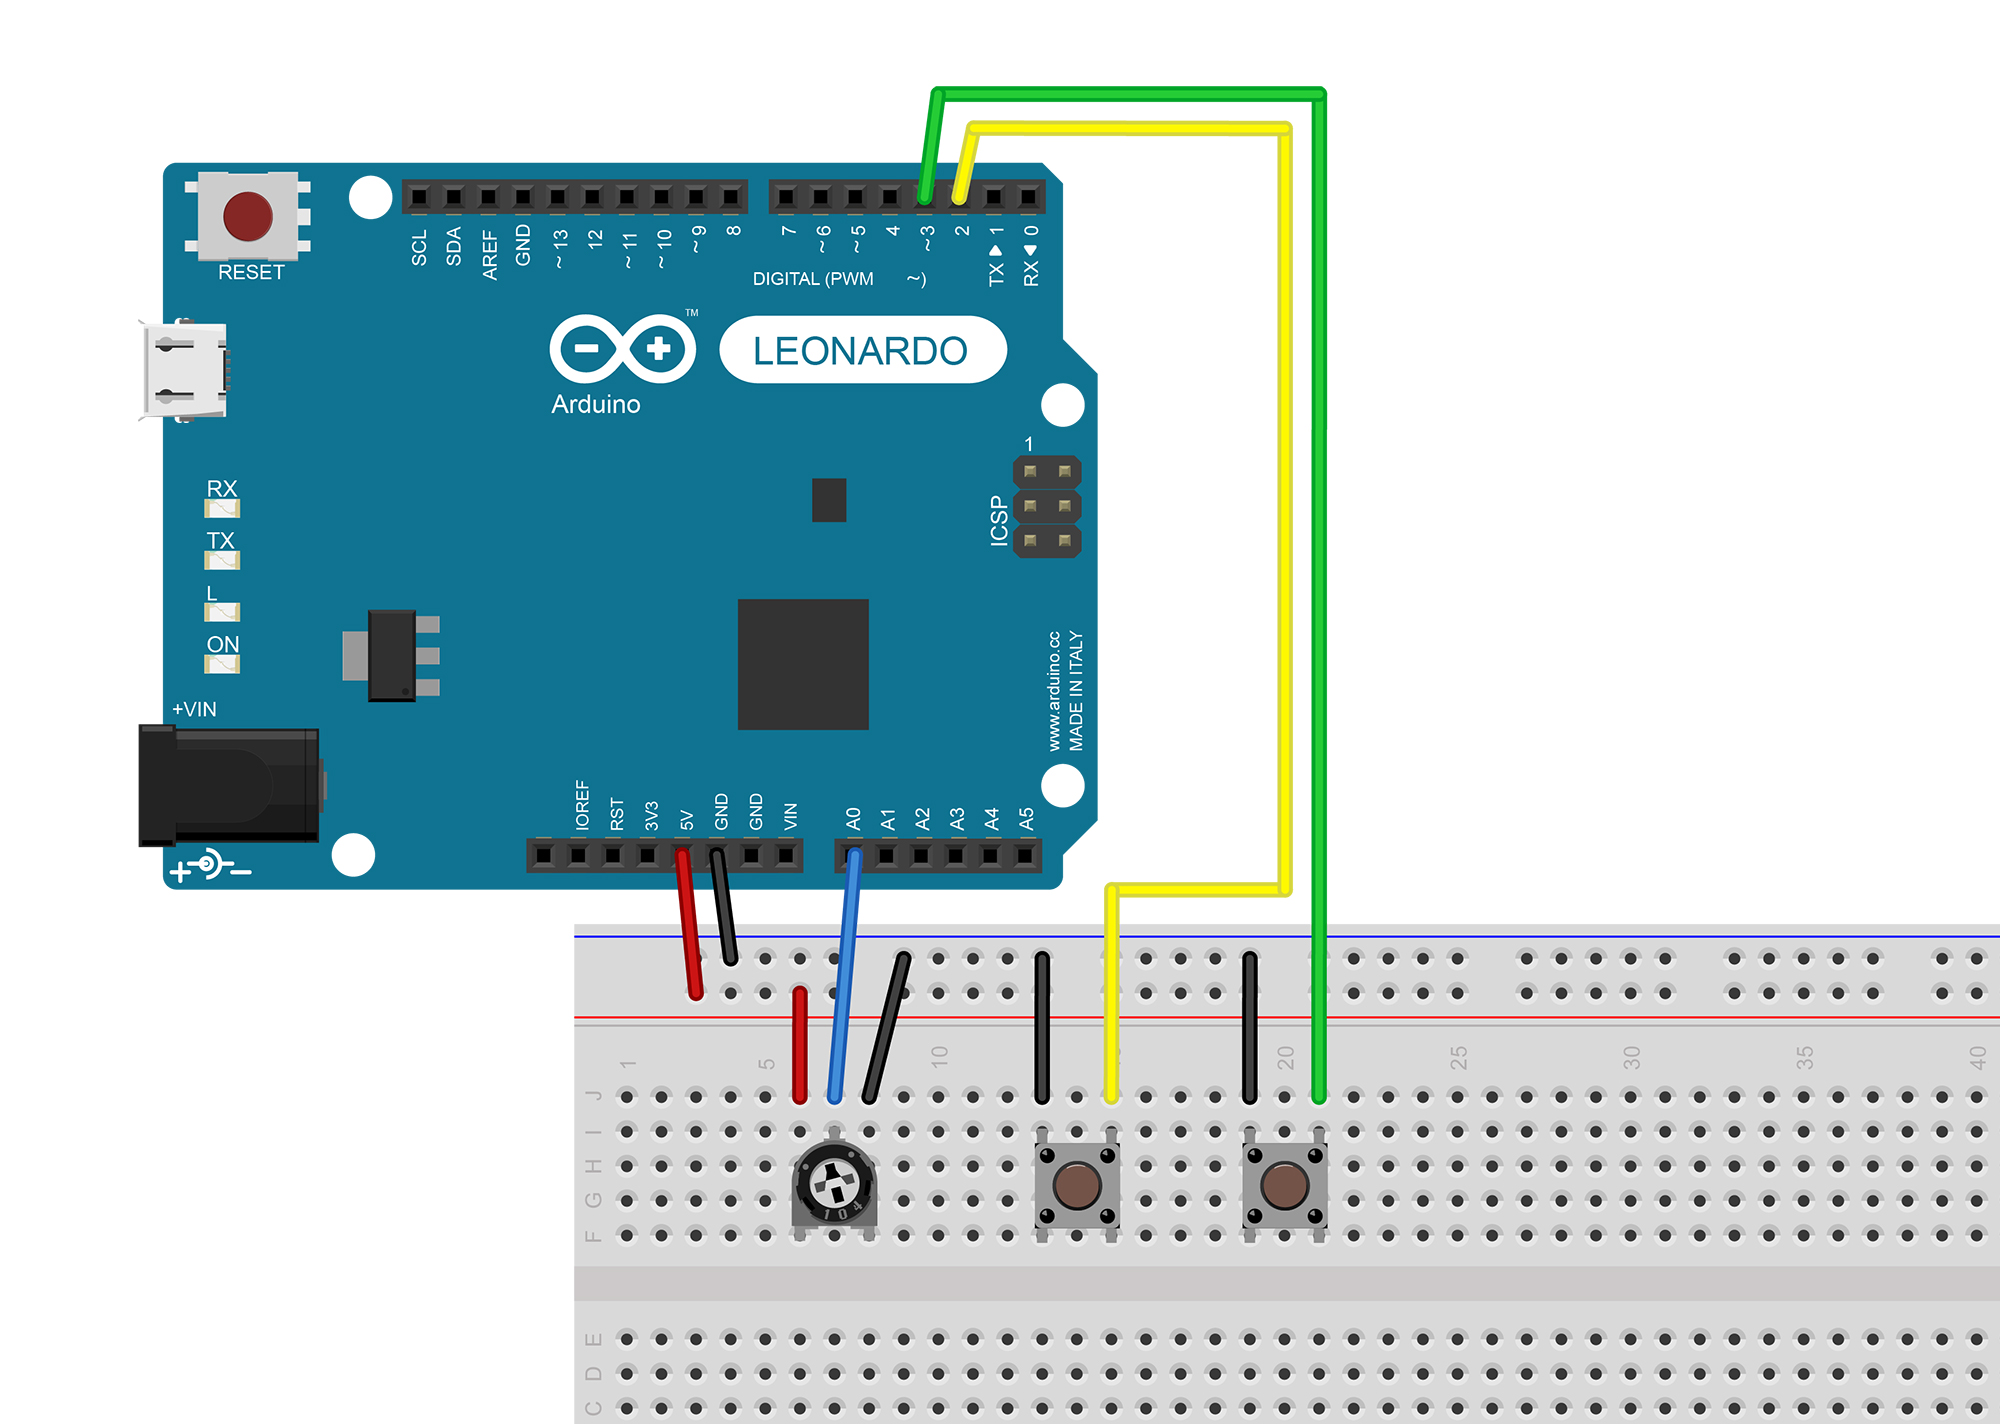 How to Emulate an Xbox Controller with Arduino (XInput) - Parts Not